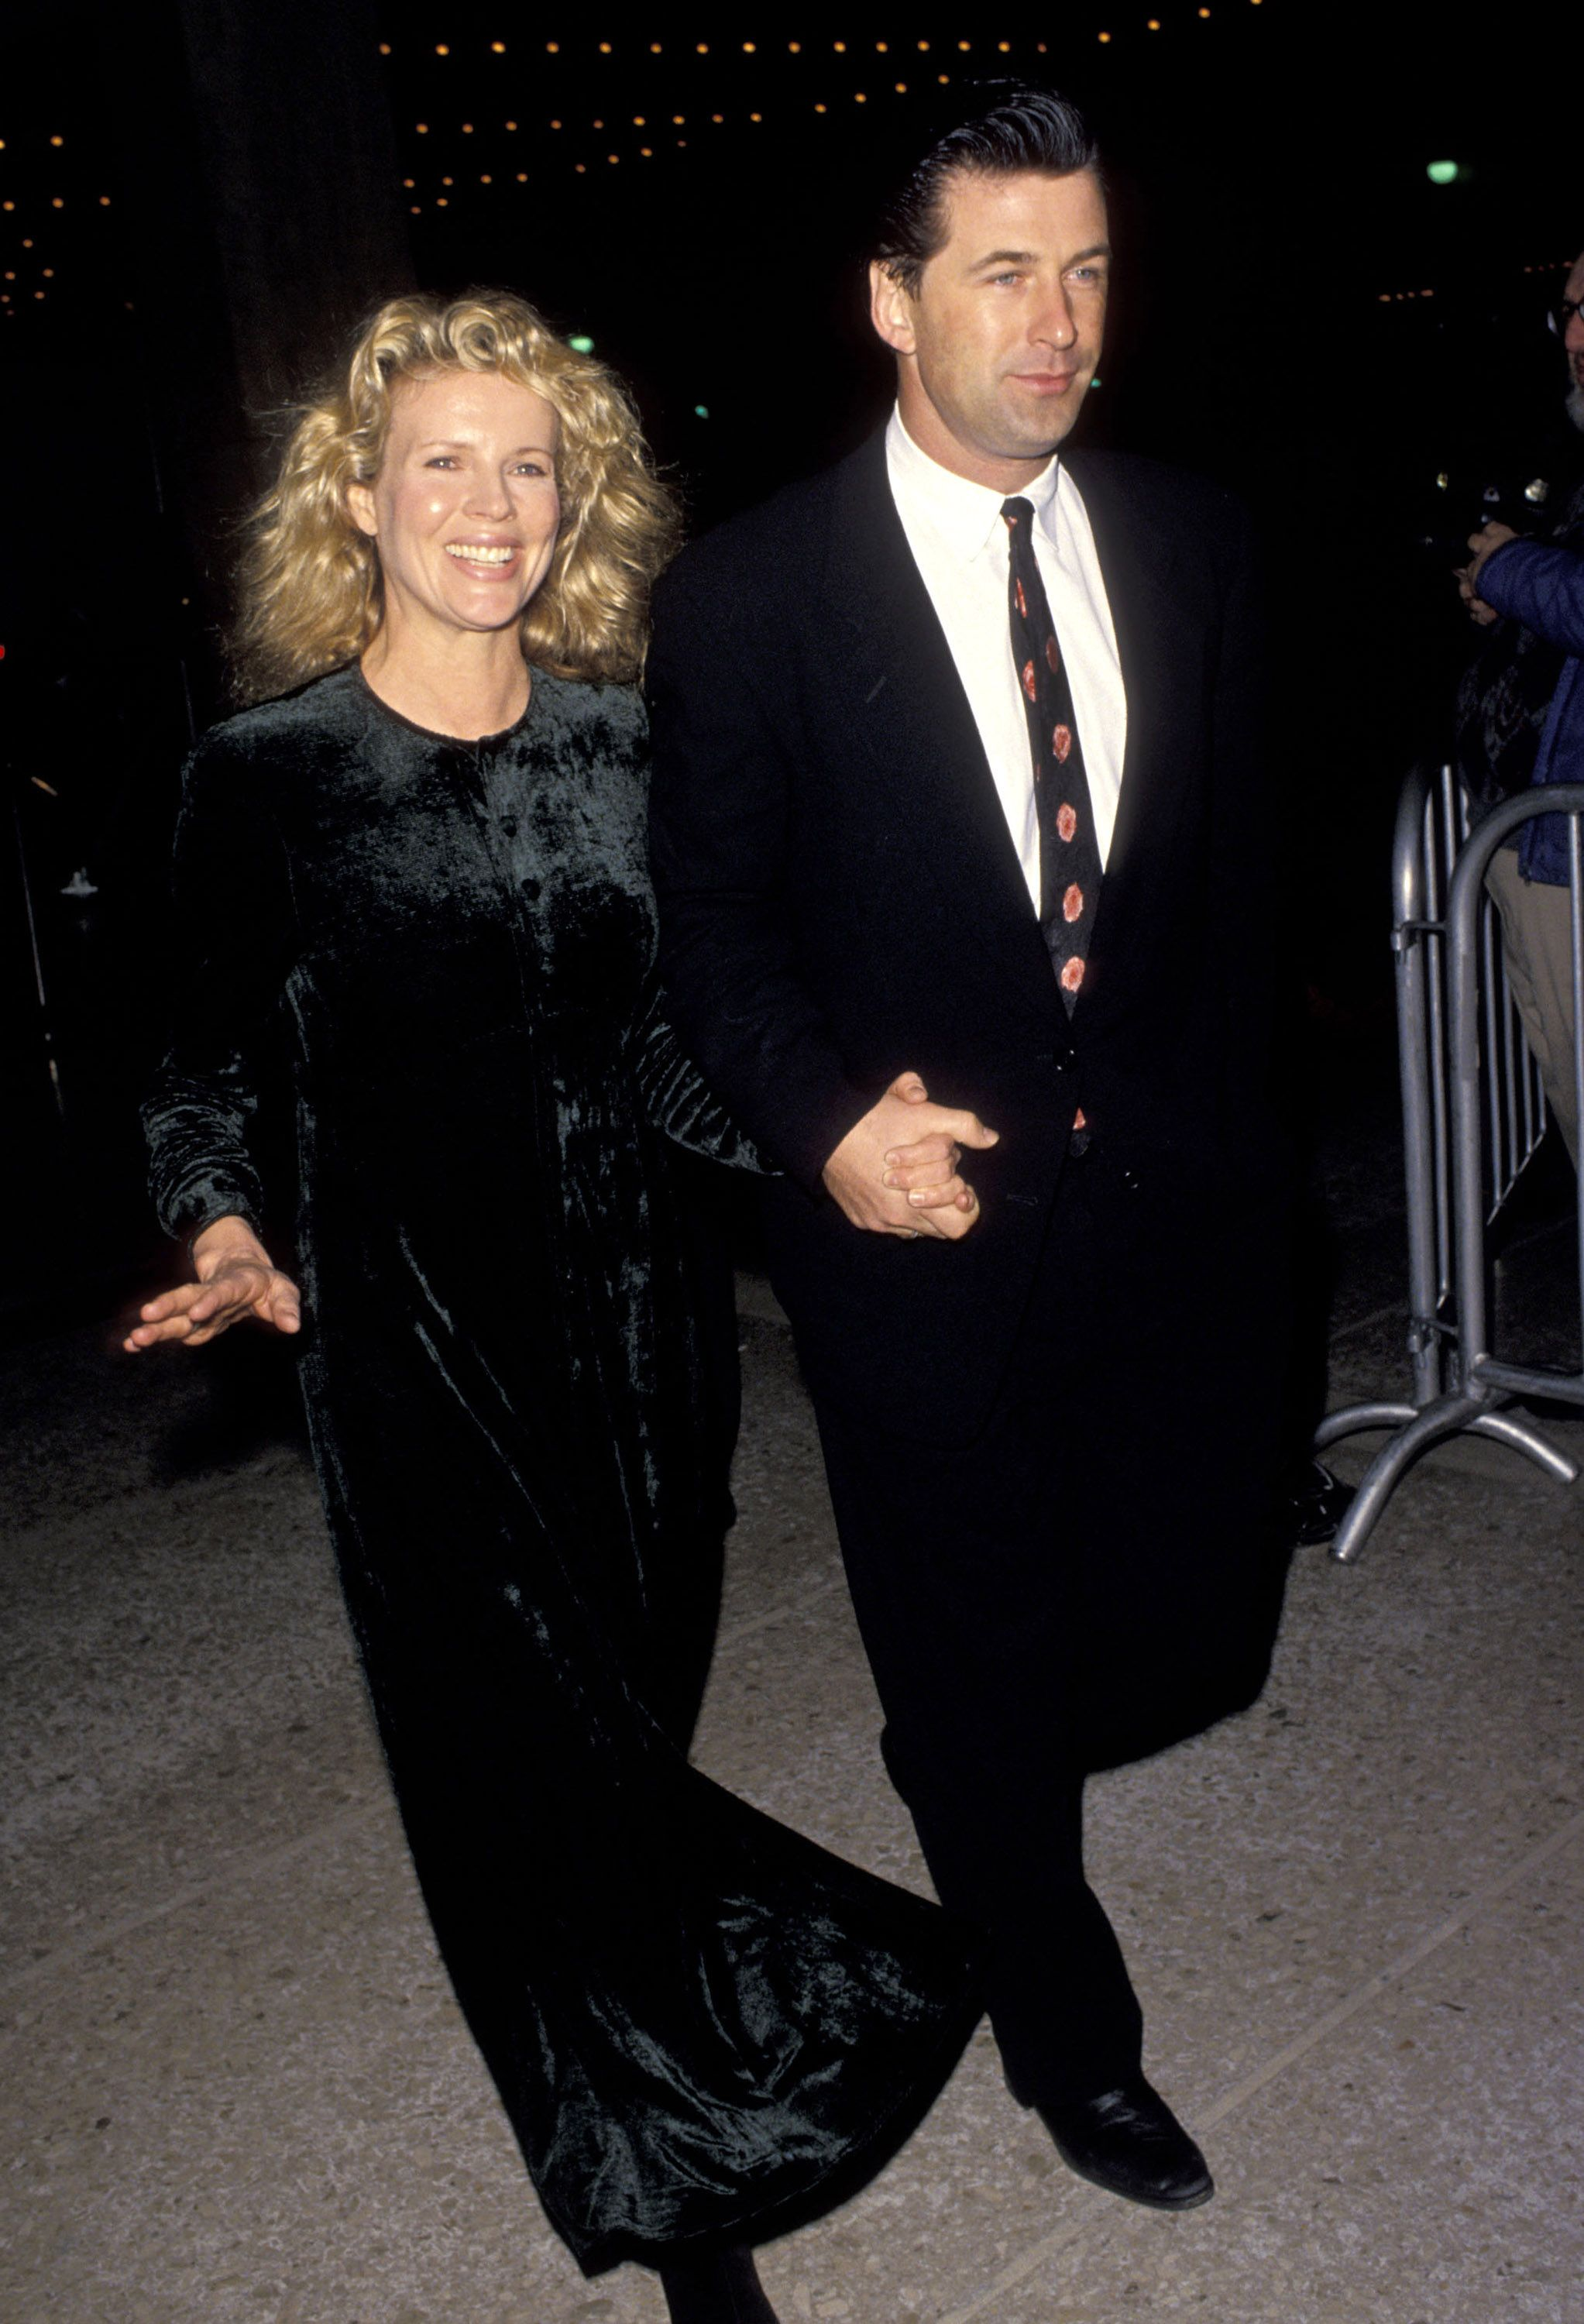 Find out which celebrity couple ruled hollywood the year